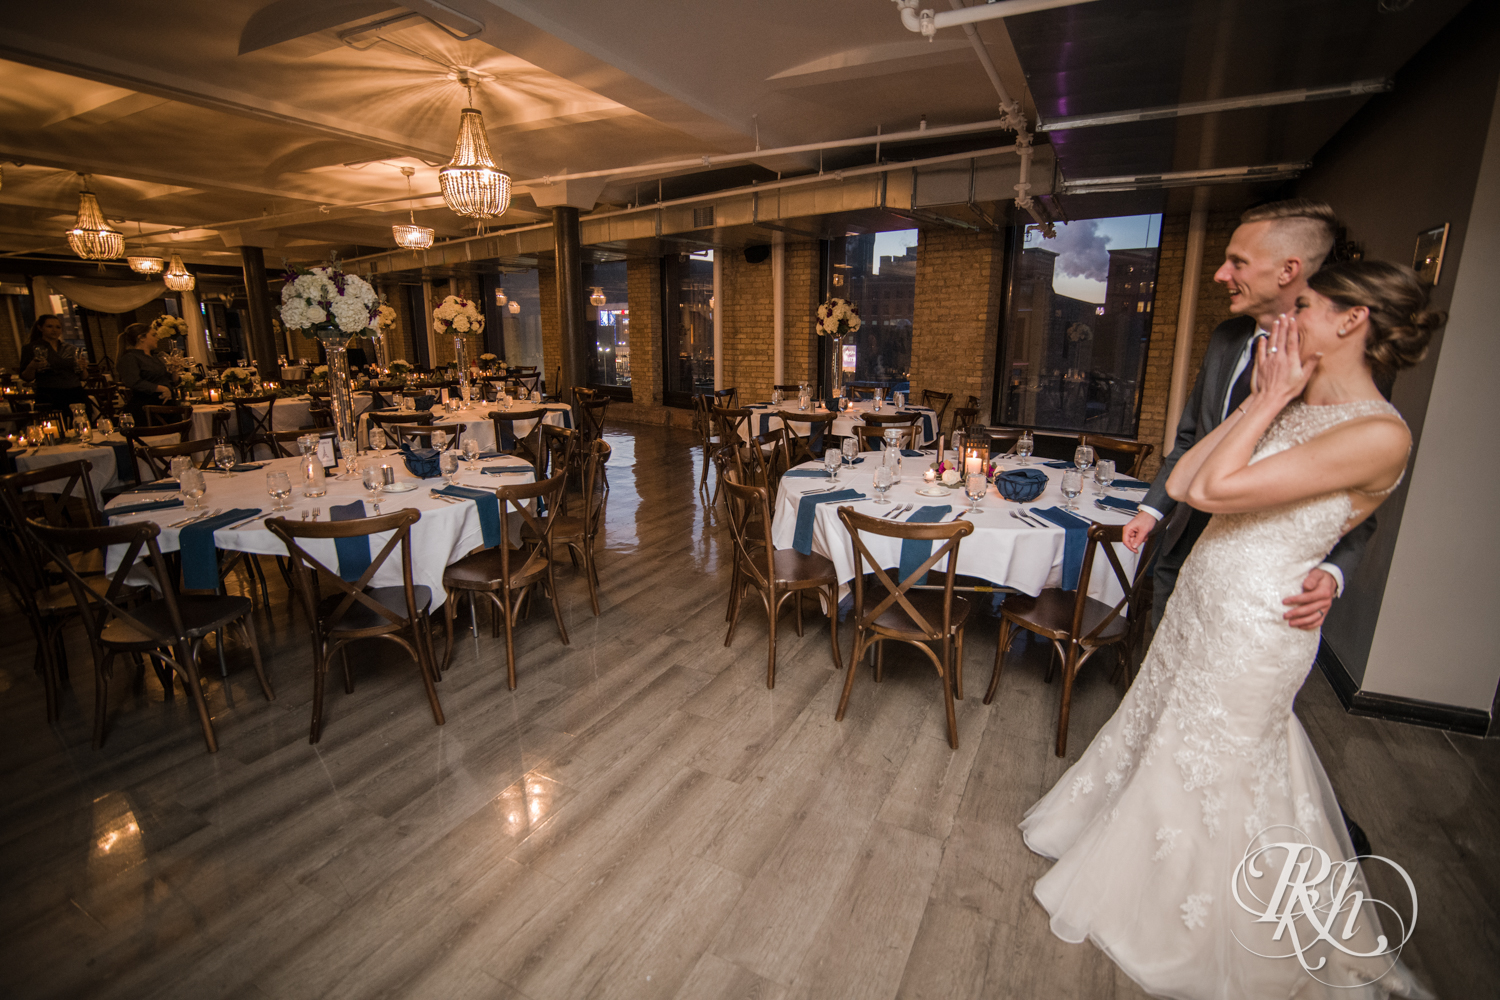 Jillian & Jared - Minnesota Wedding Photography - Lumber Exchange Event Center - RKH Images - Blog (57 of 87).jpg